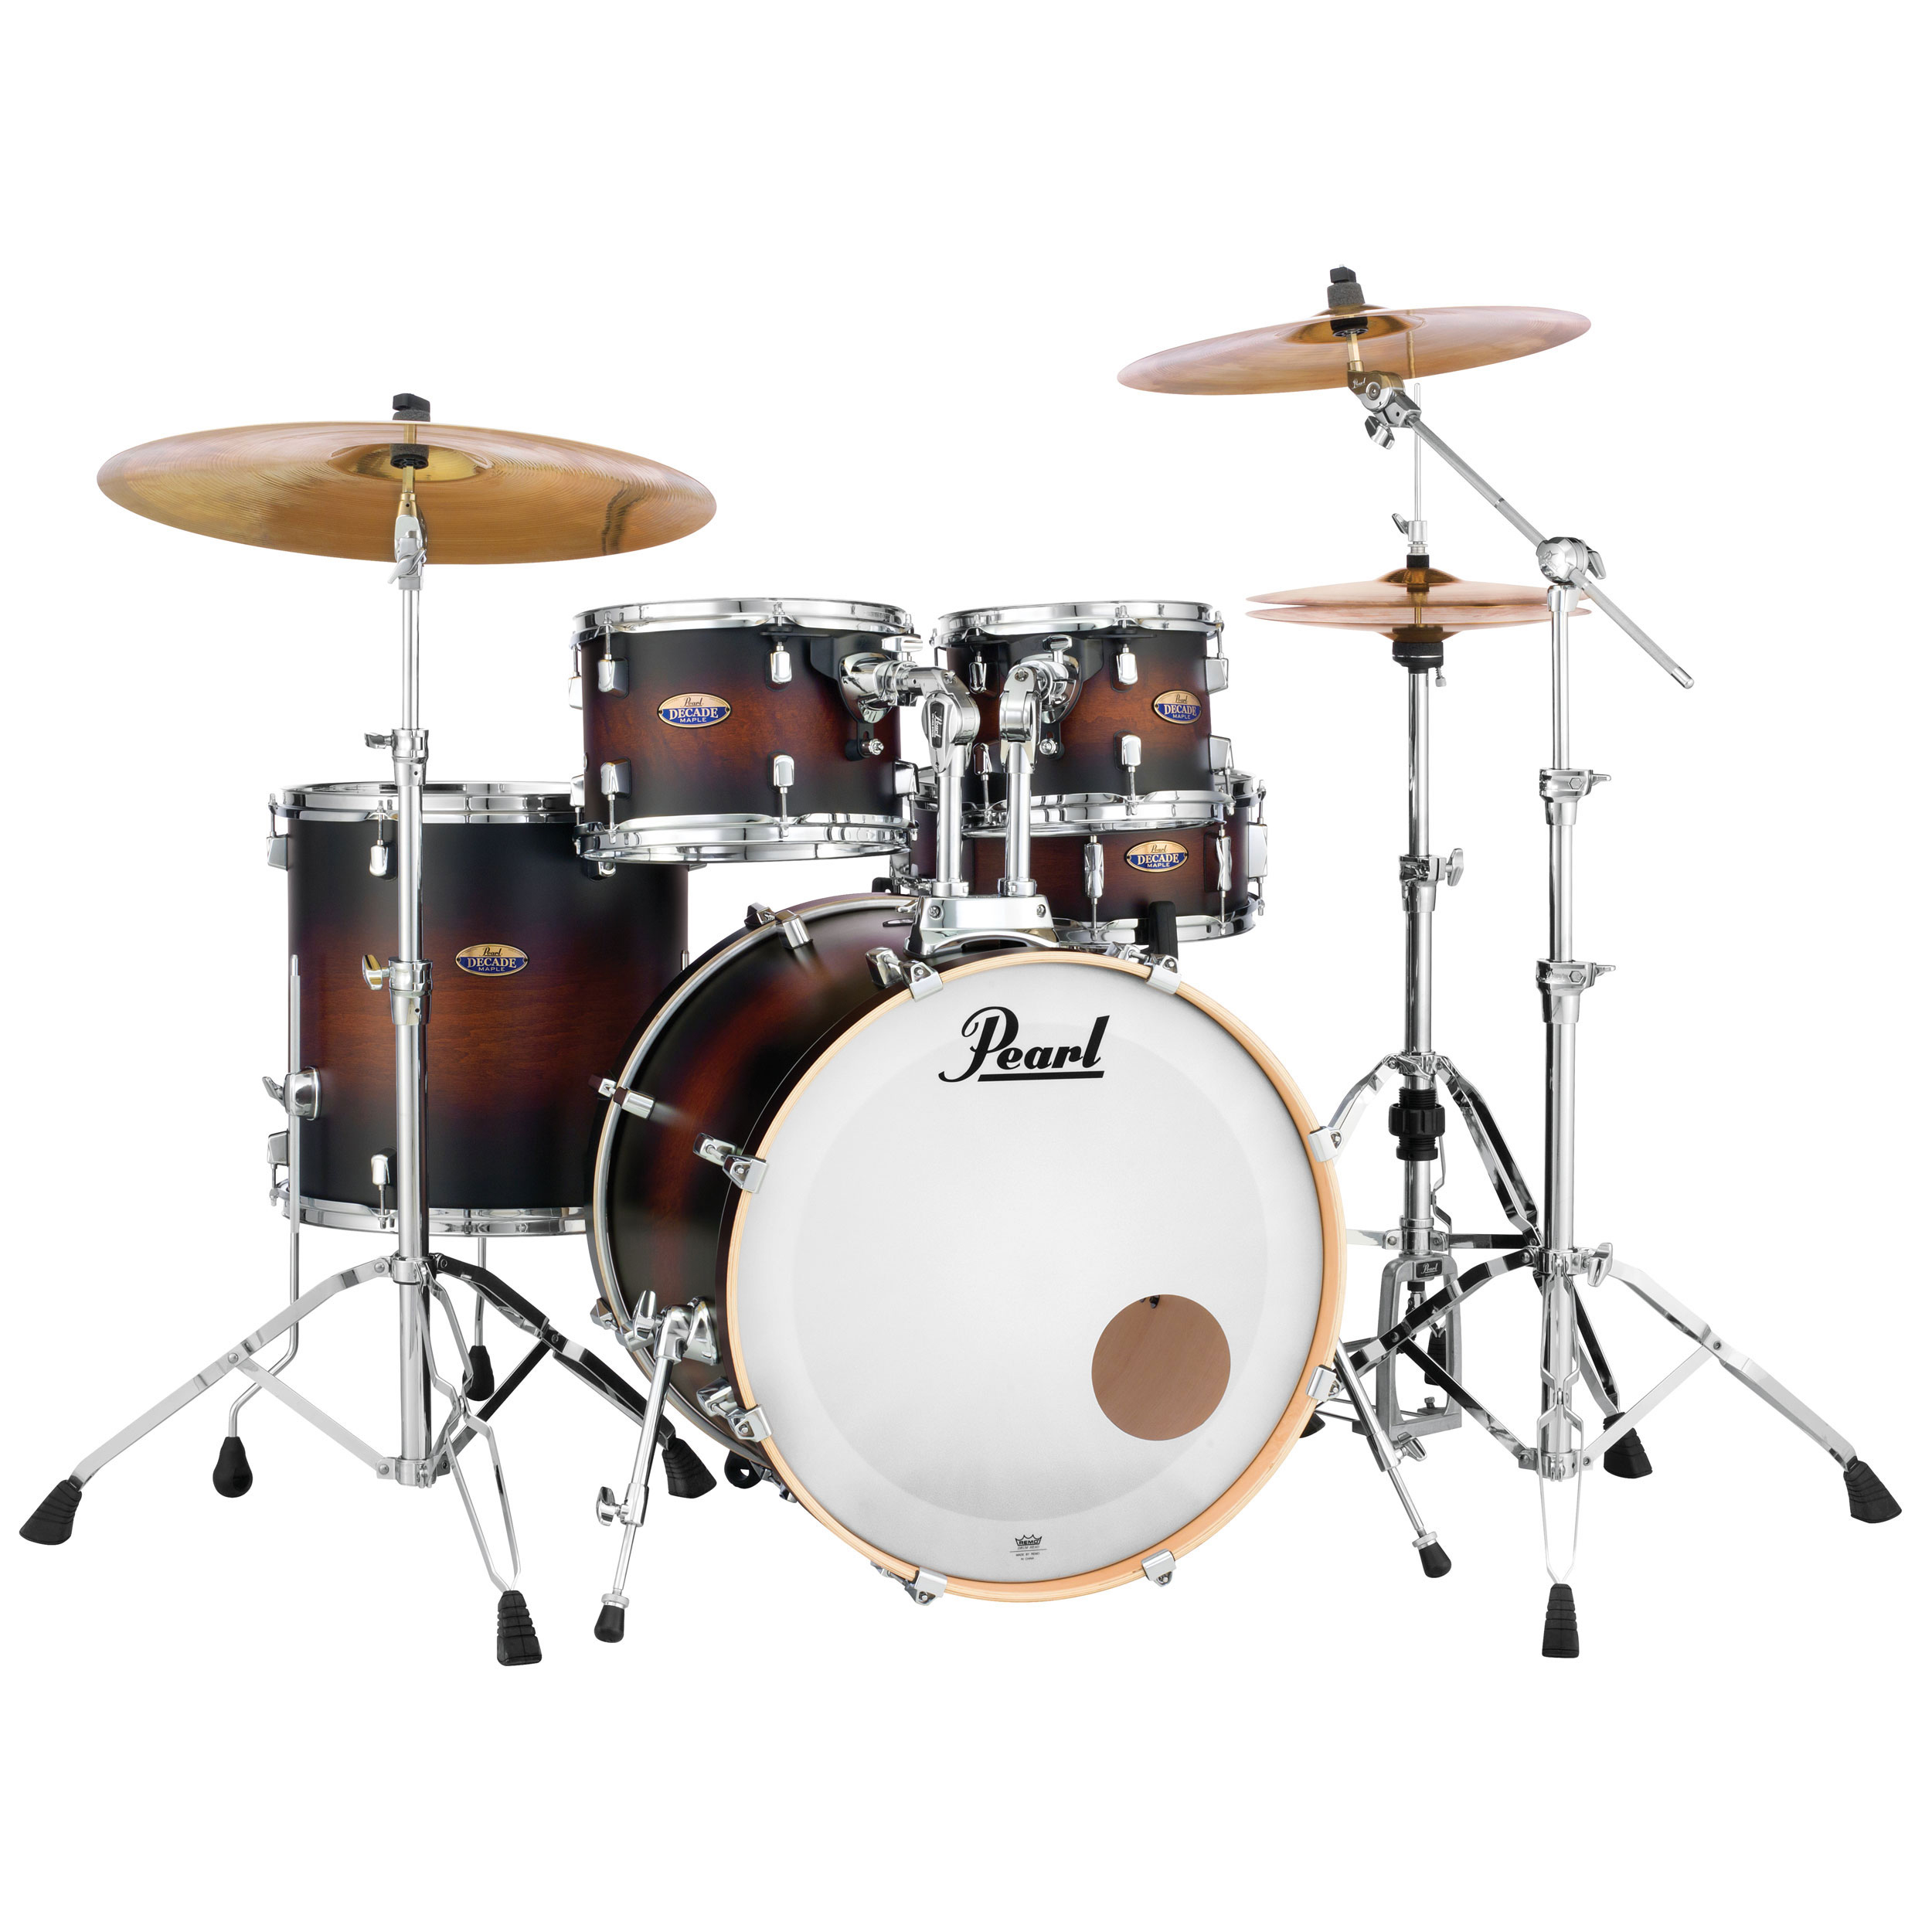 """Pearl Decade Maple 5-Piece Drum Set Shell Pack (22"""" Bass, 10/12/16"""" Toms, 14"""" Snare) in Lacquer Finish"""